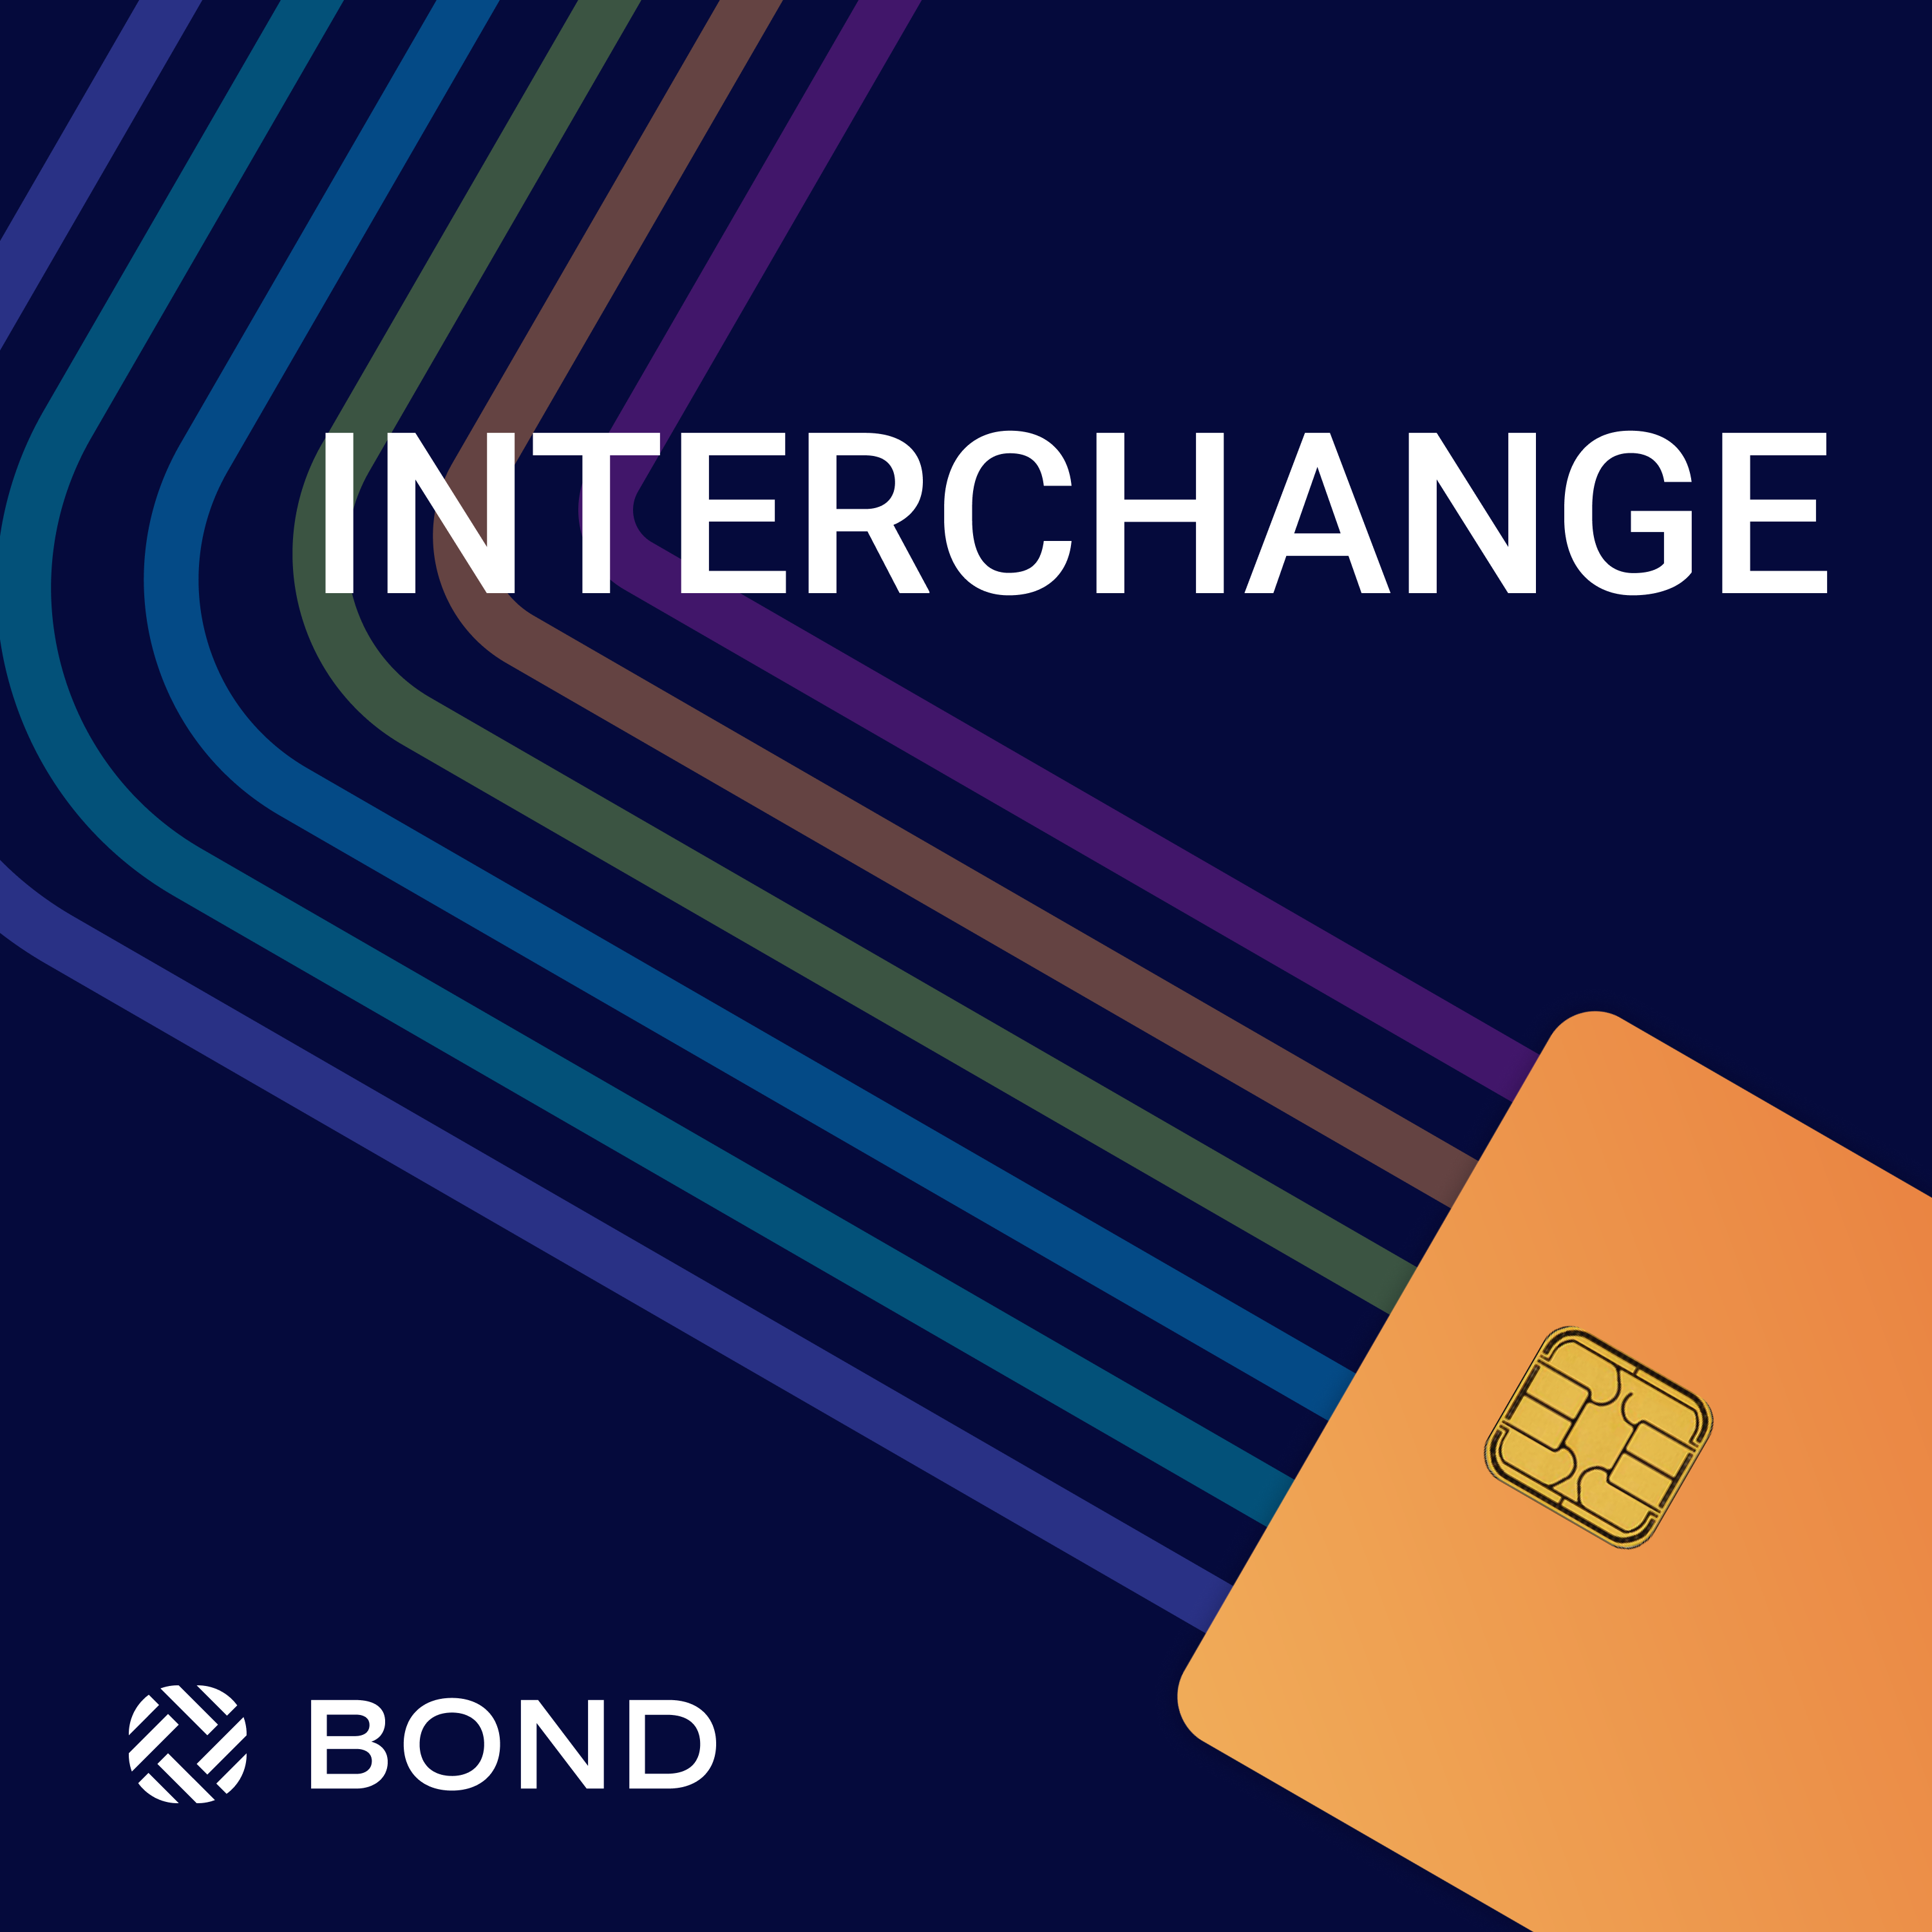 Welcome to Interchange at Bond - Bond's New Podcast